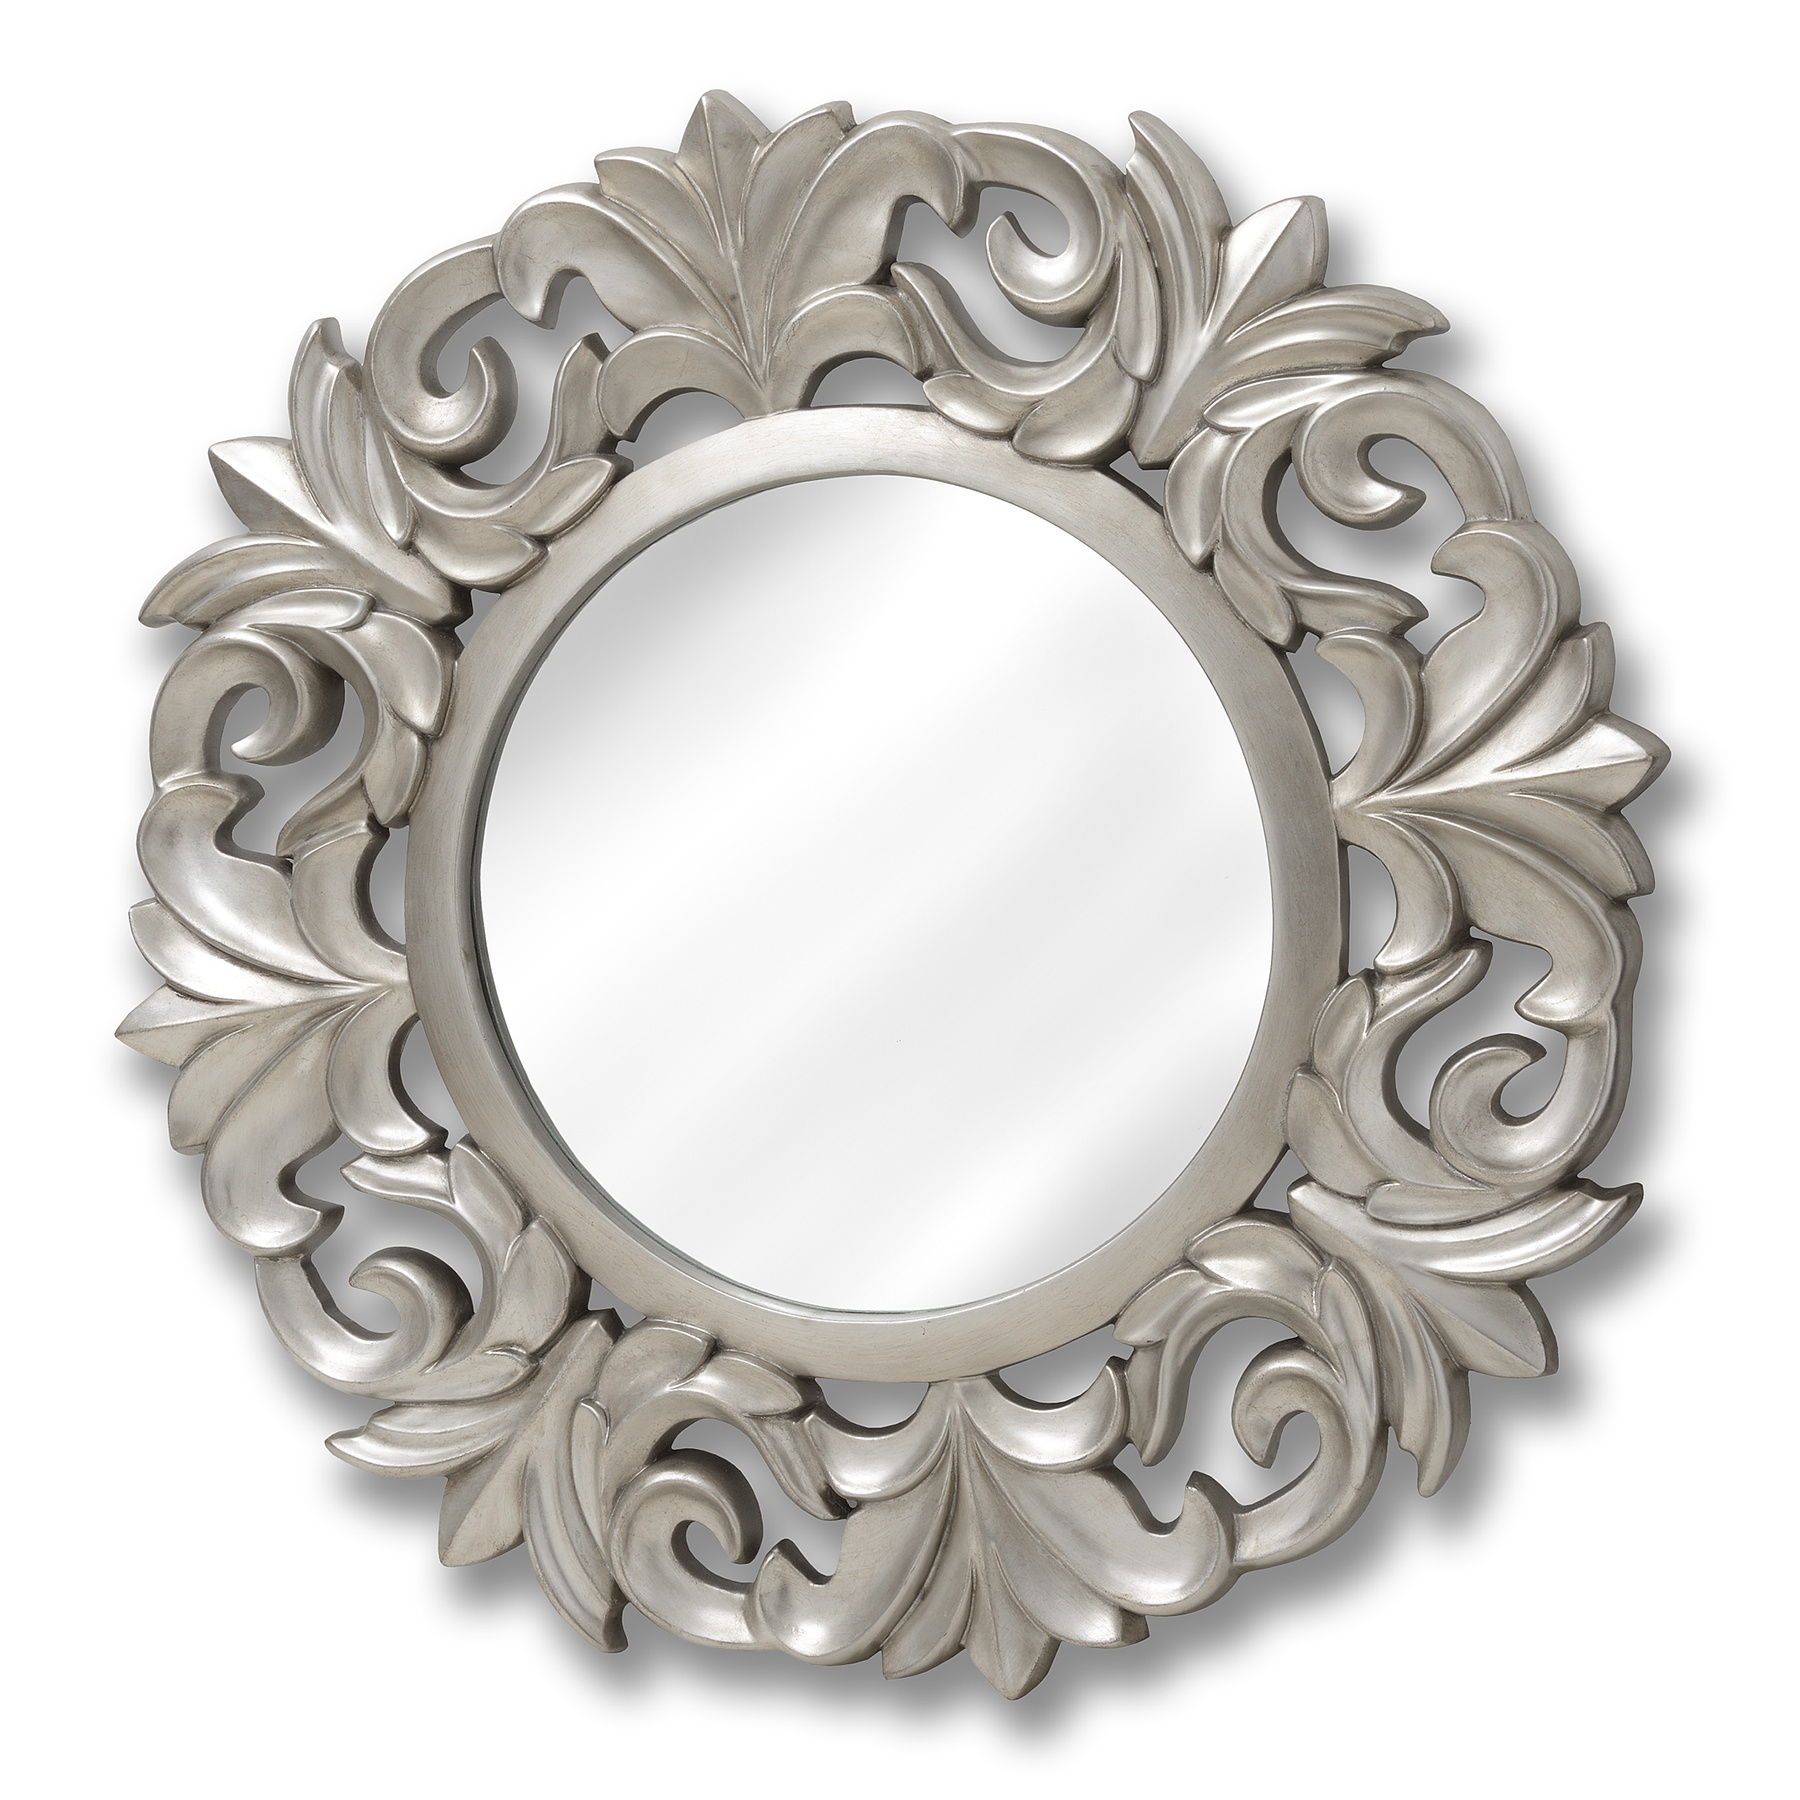 Large baroque circular mirror from hill interiors for Plastic baroque mirror